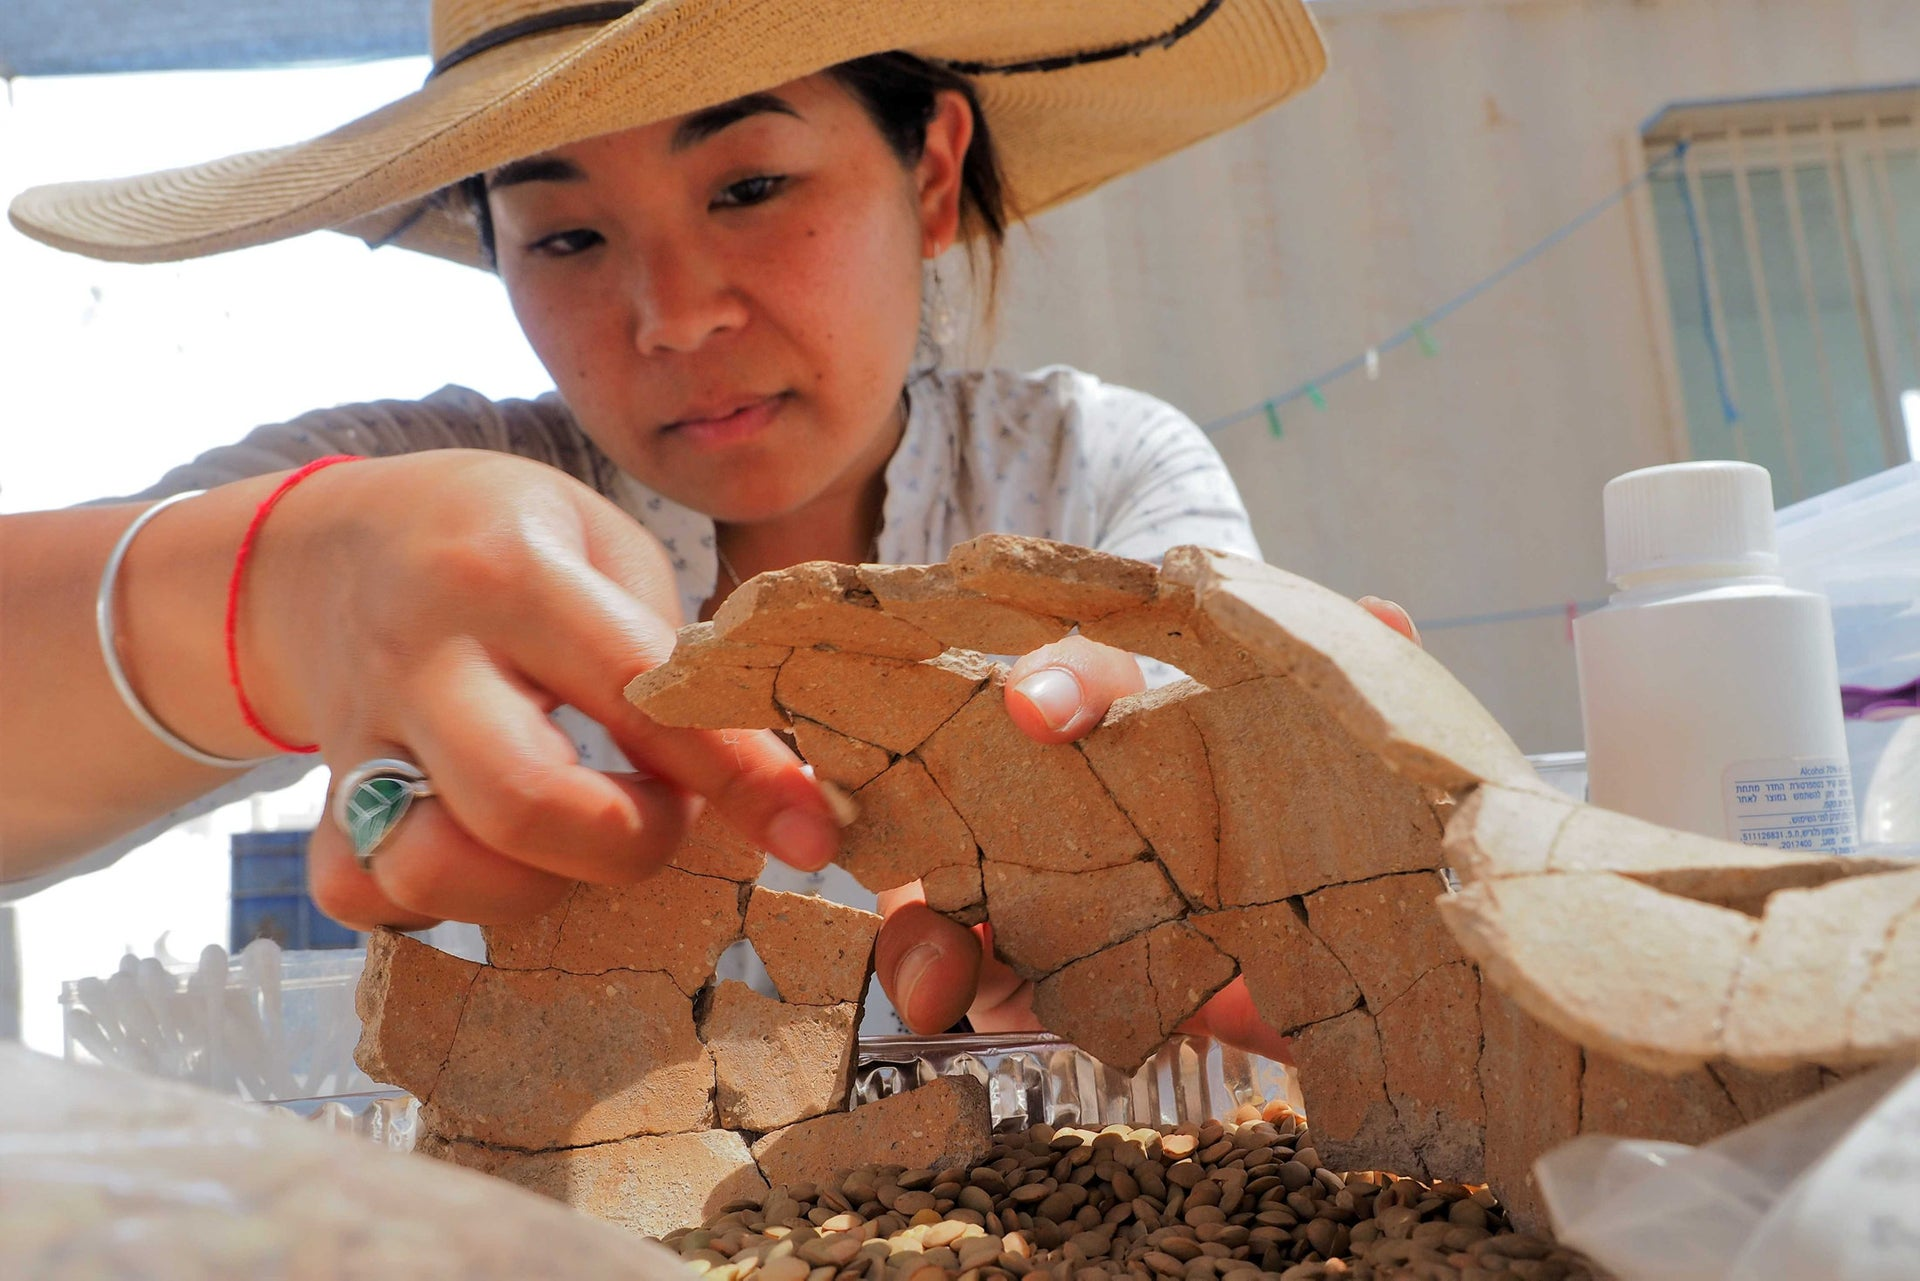 An archaeologist restoring a Bronze Age jar recovered at Tel Shimron